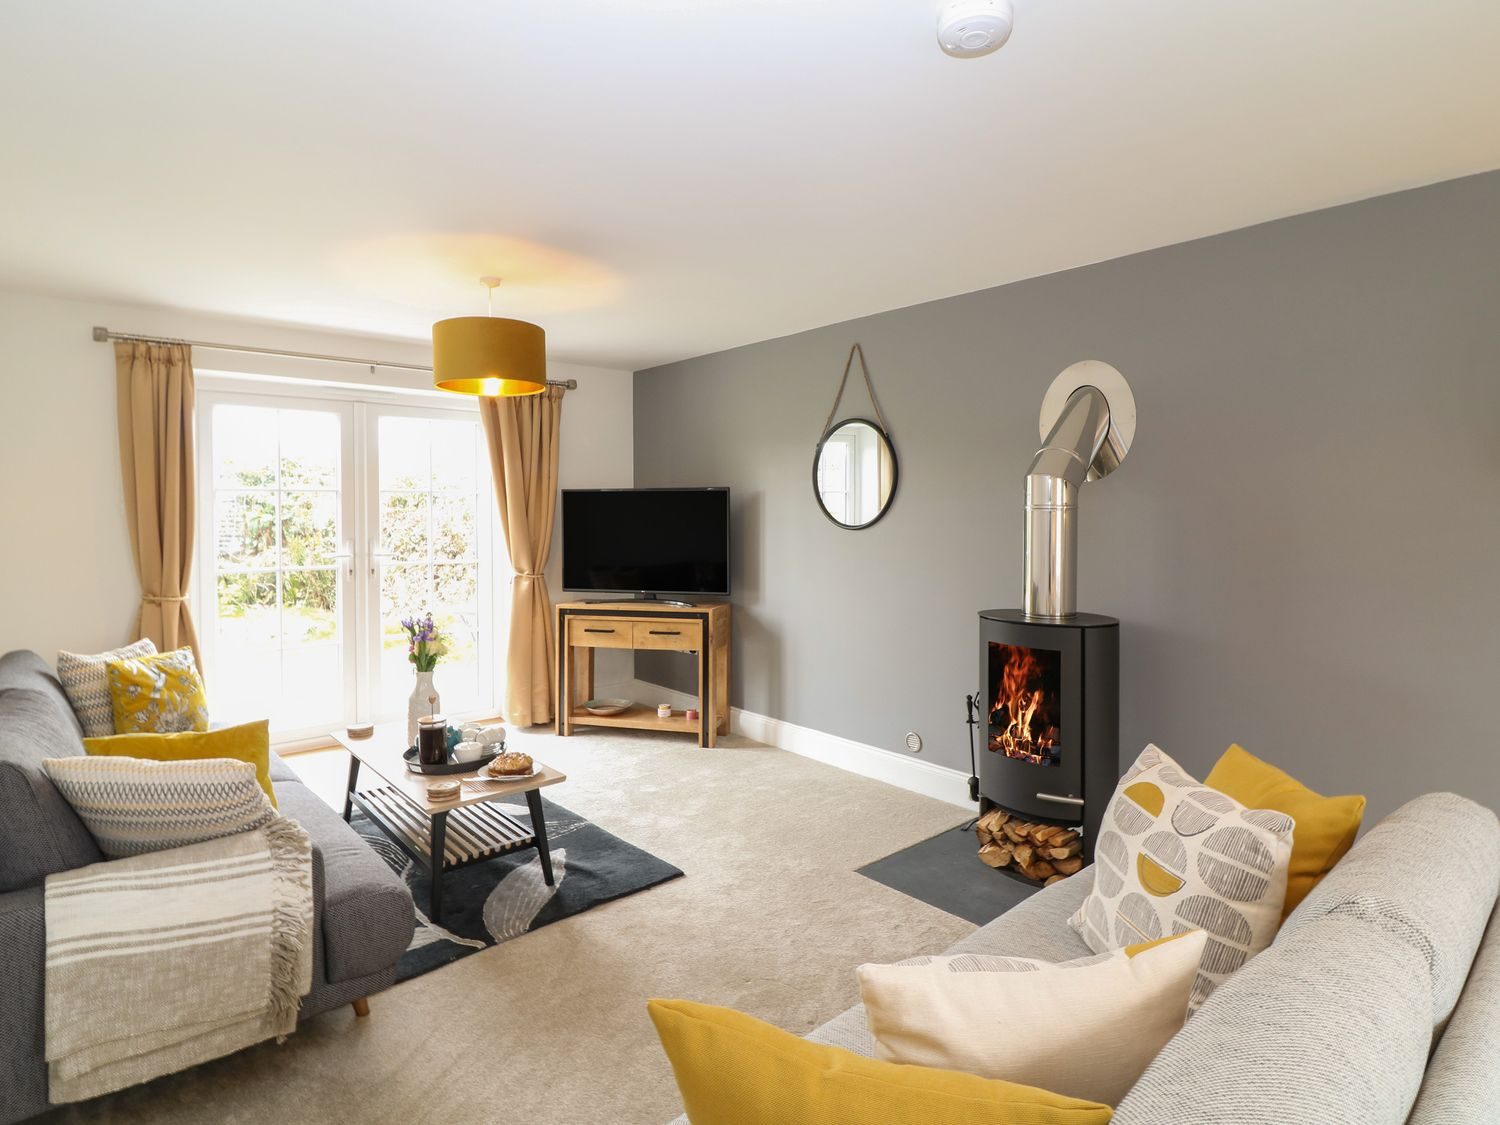 woodburner in your holiday home - get ready for spring